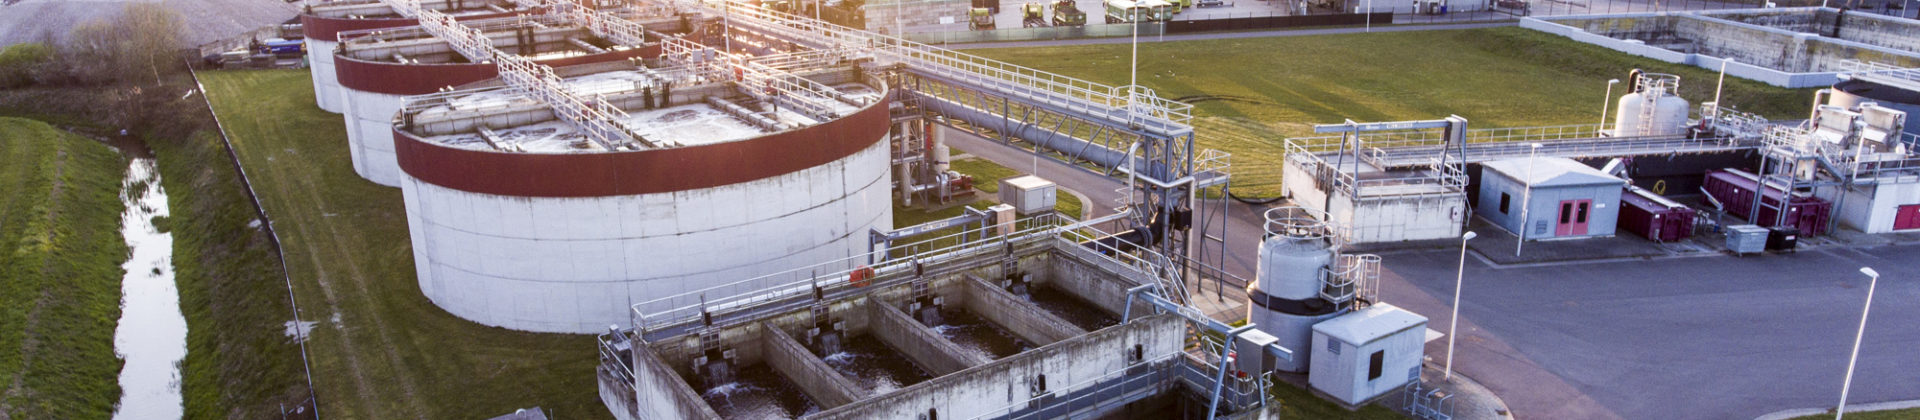 Aquasuite solutions for municipal wastewater treatment and transport